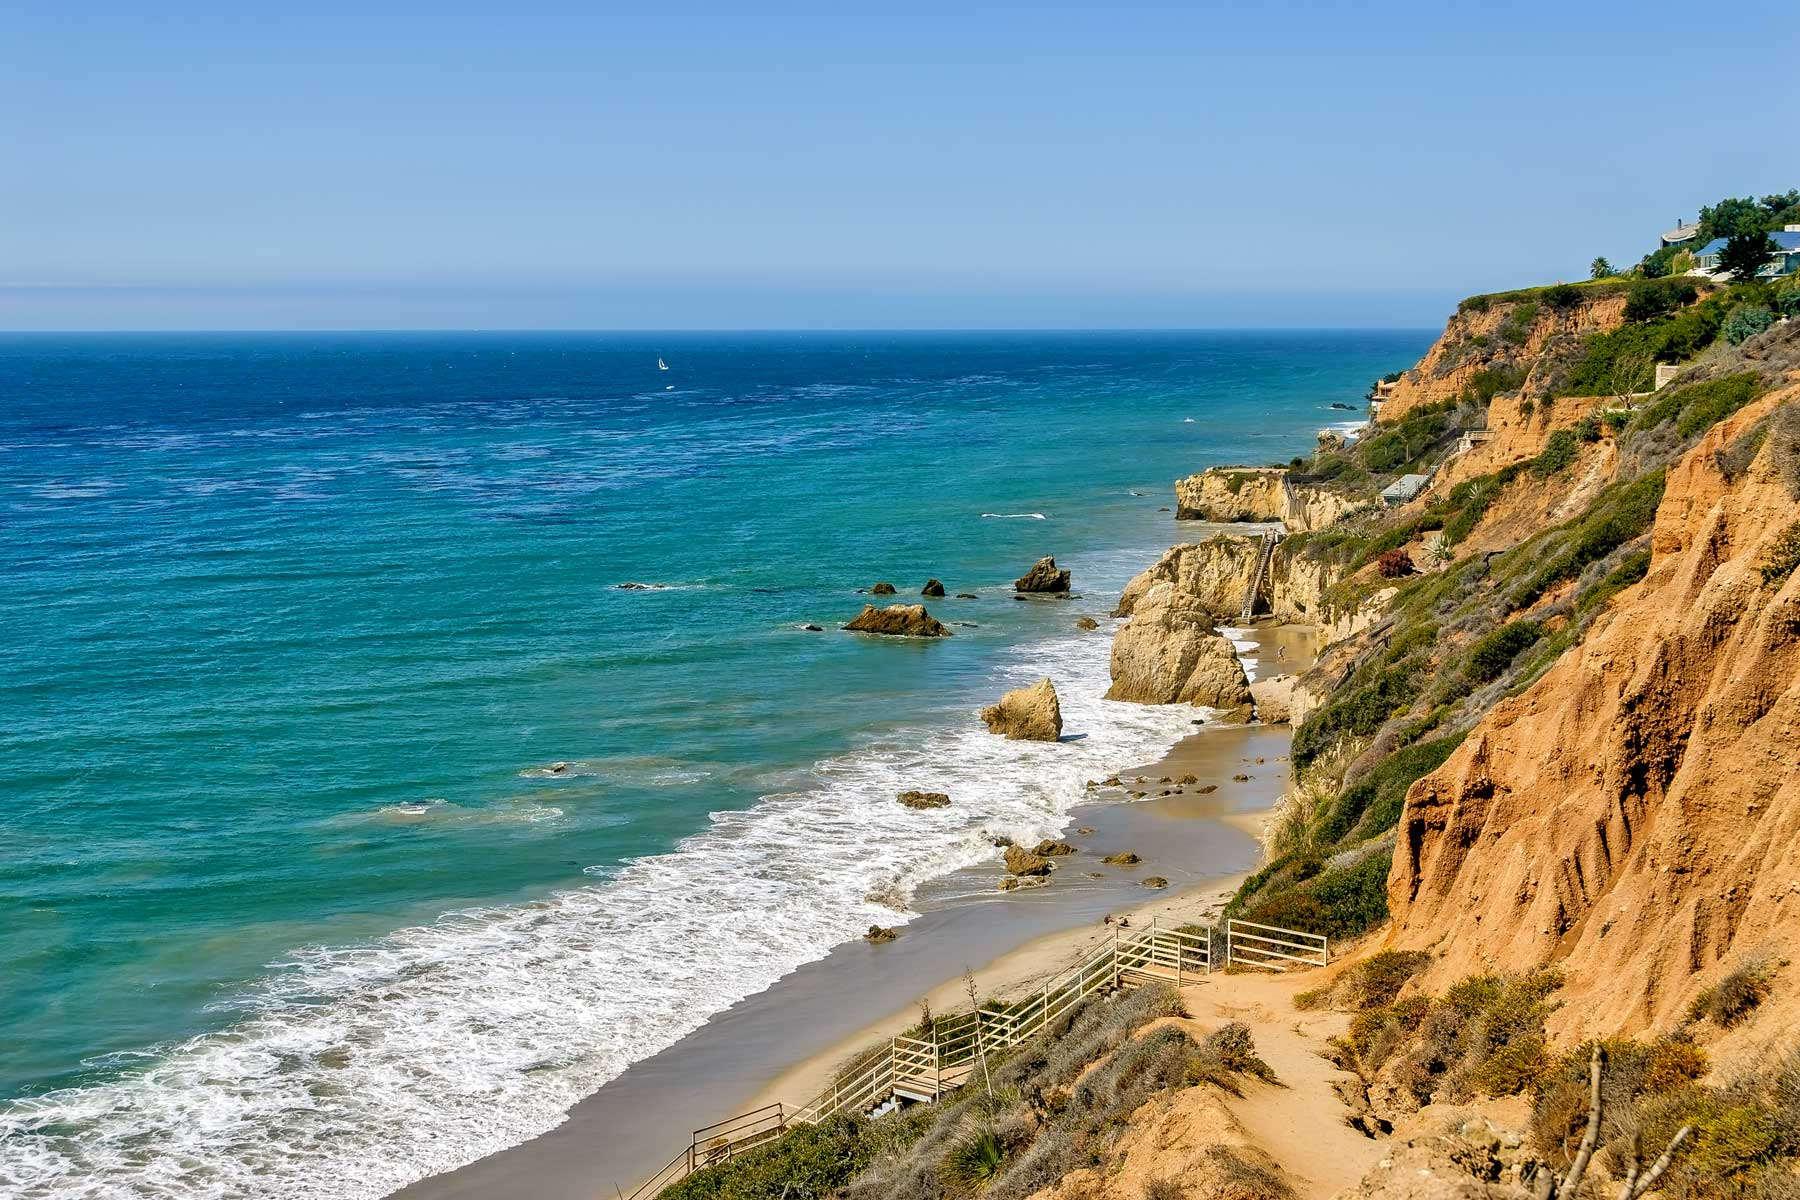 View of waves breaking in El Matador beach in Southern California